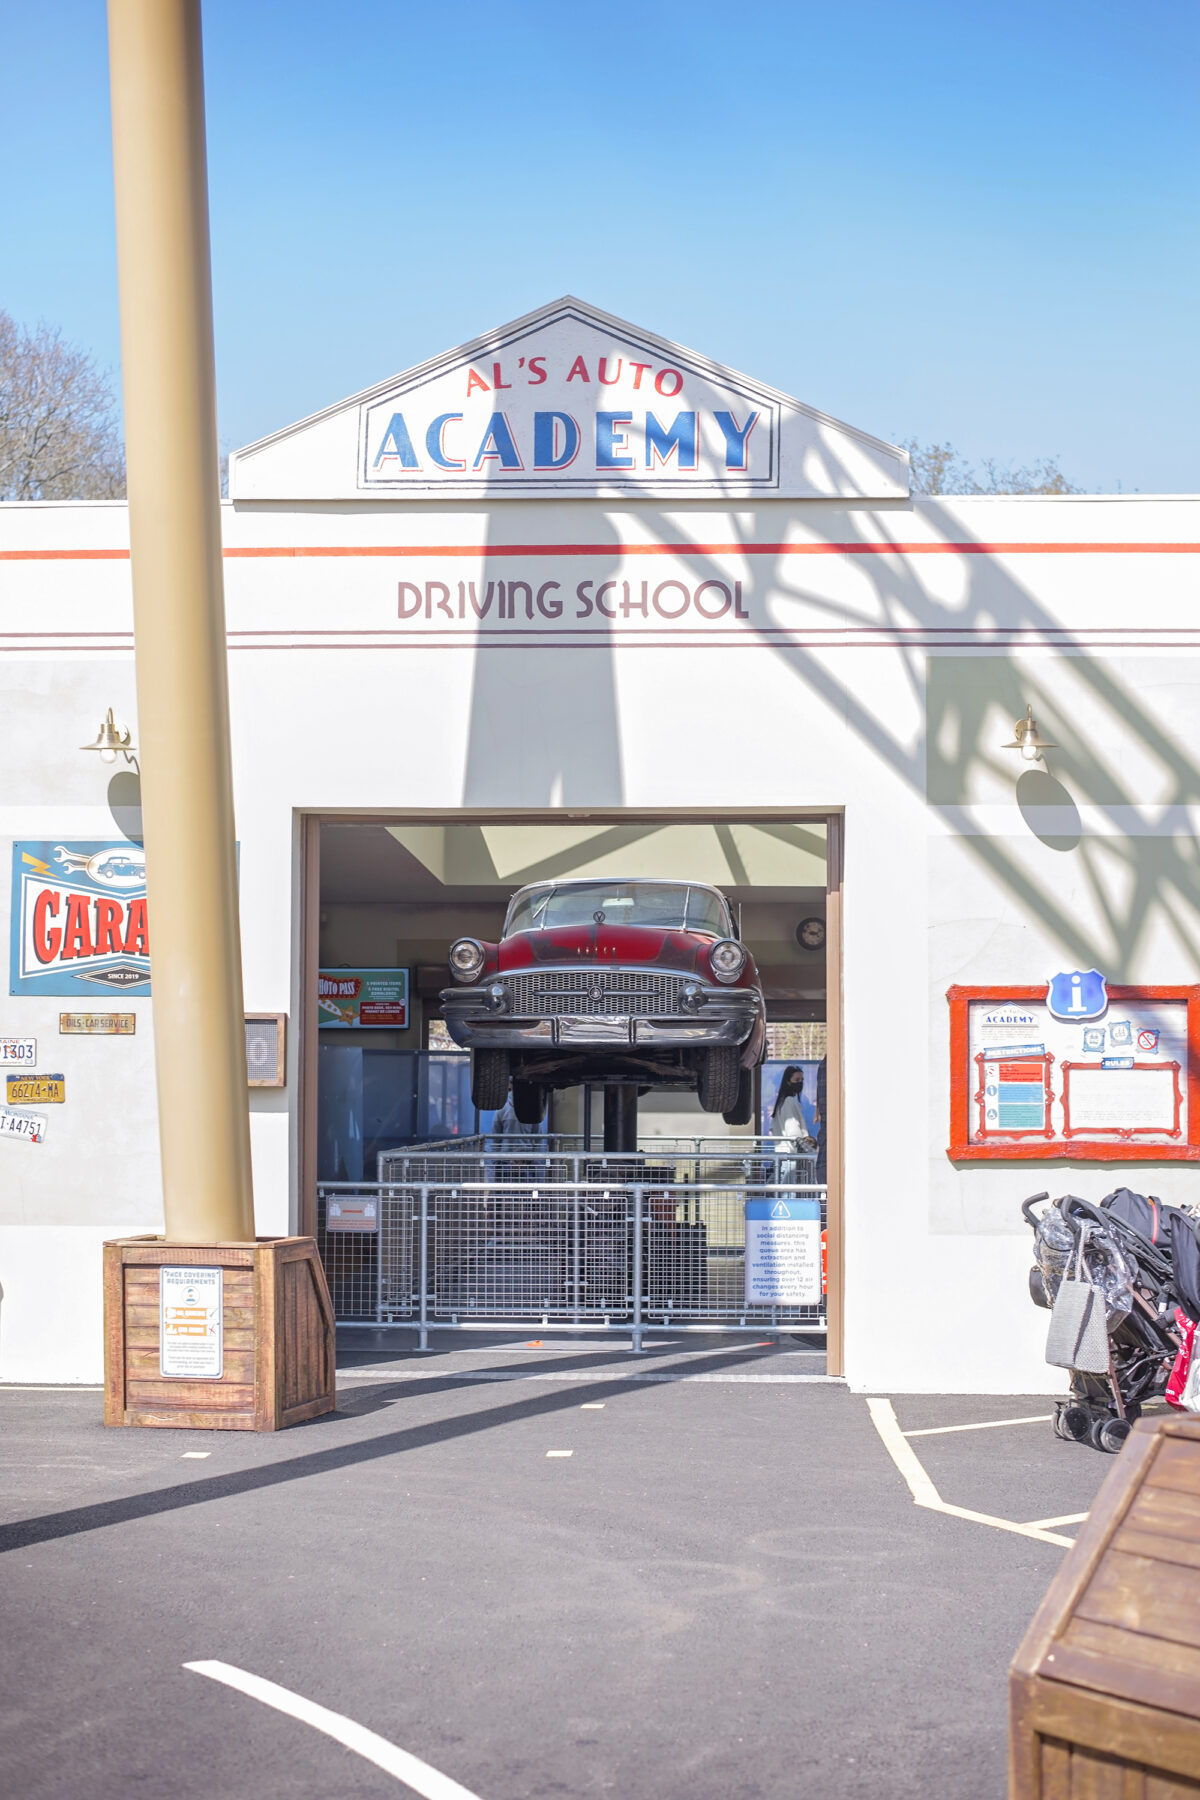 Image shows the open queue area and elevated 1950s car at  Al's Auto Academy Driving School at Tornado Springs in Paultons Park.